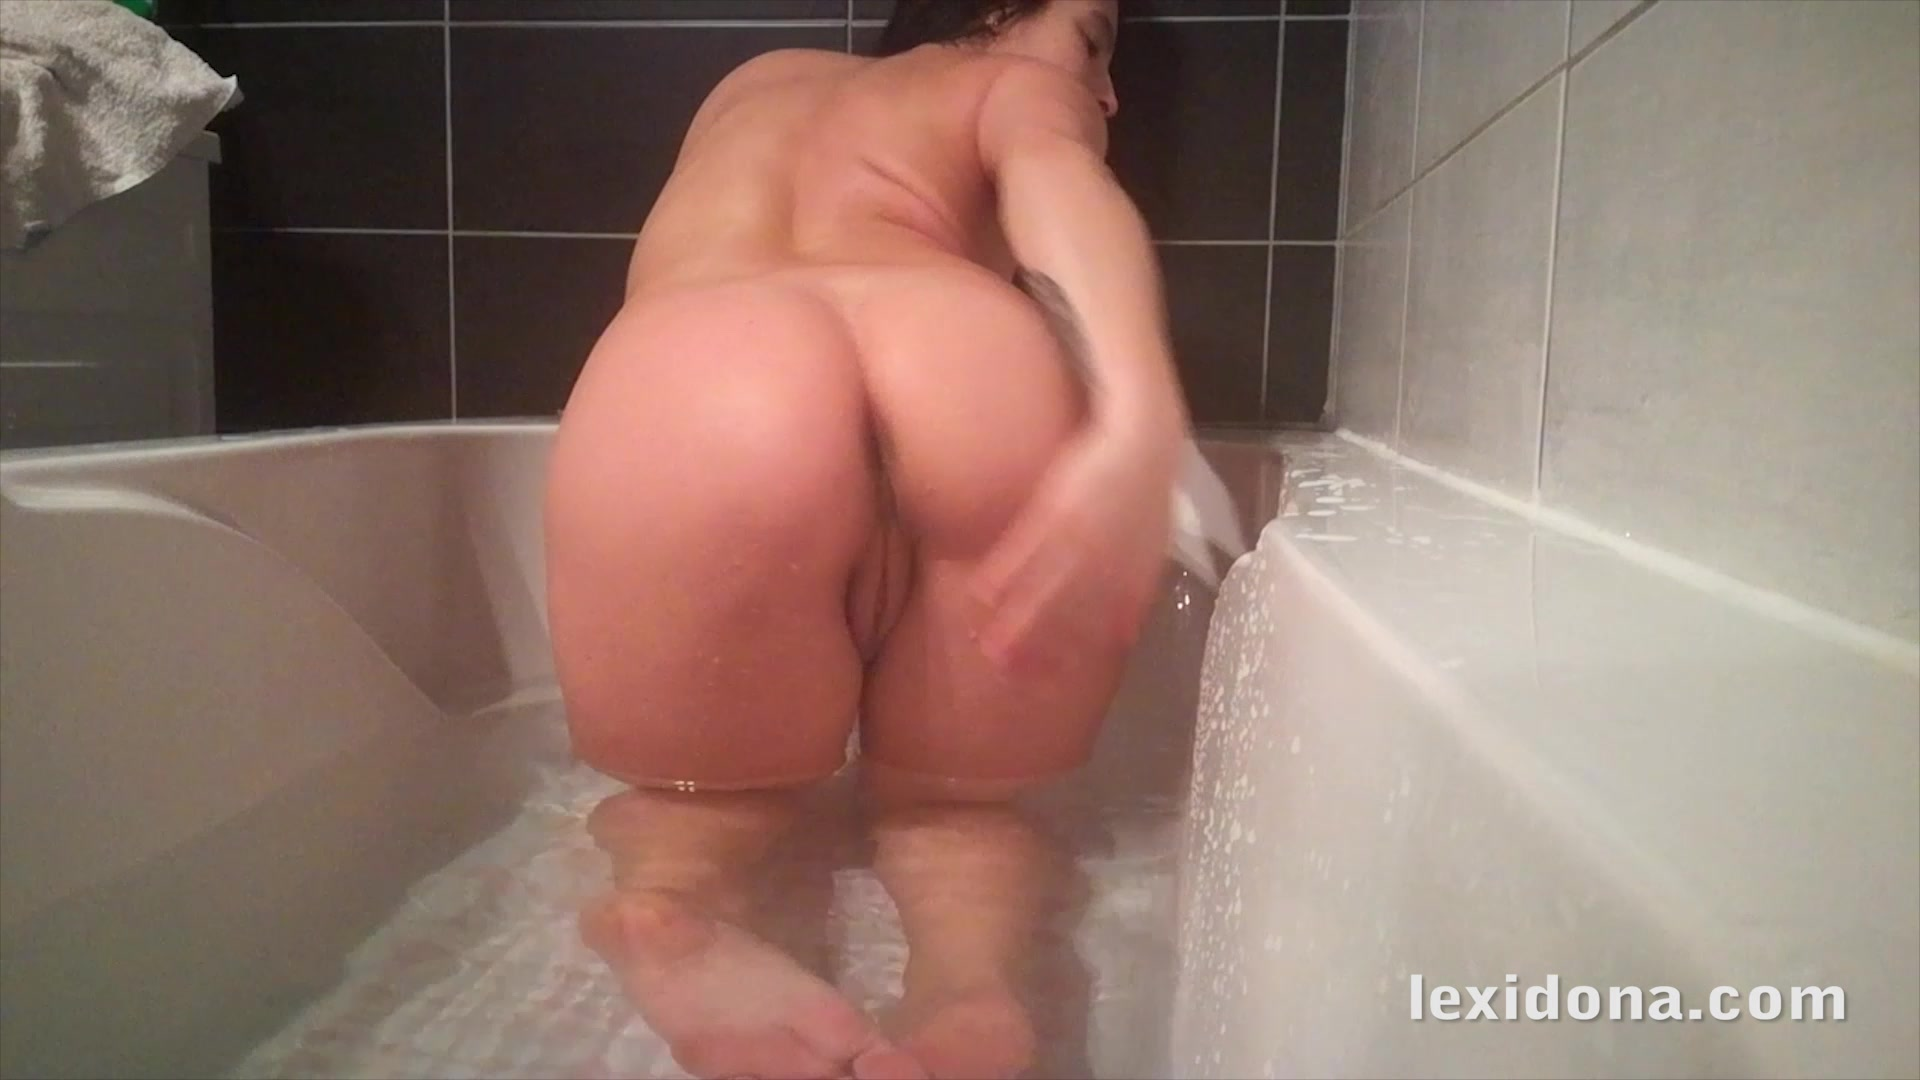 Lexi Dona shows off her pregnant belly in the bath